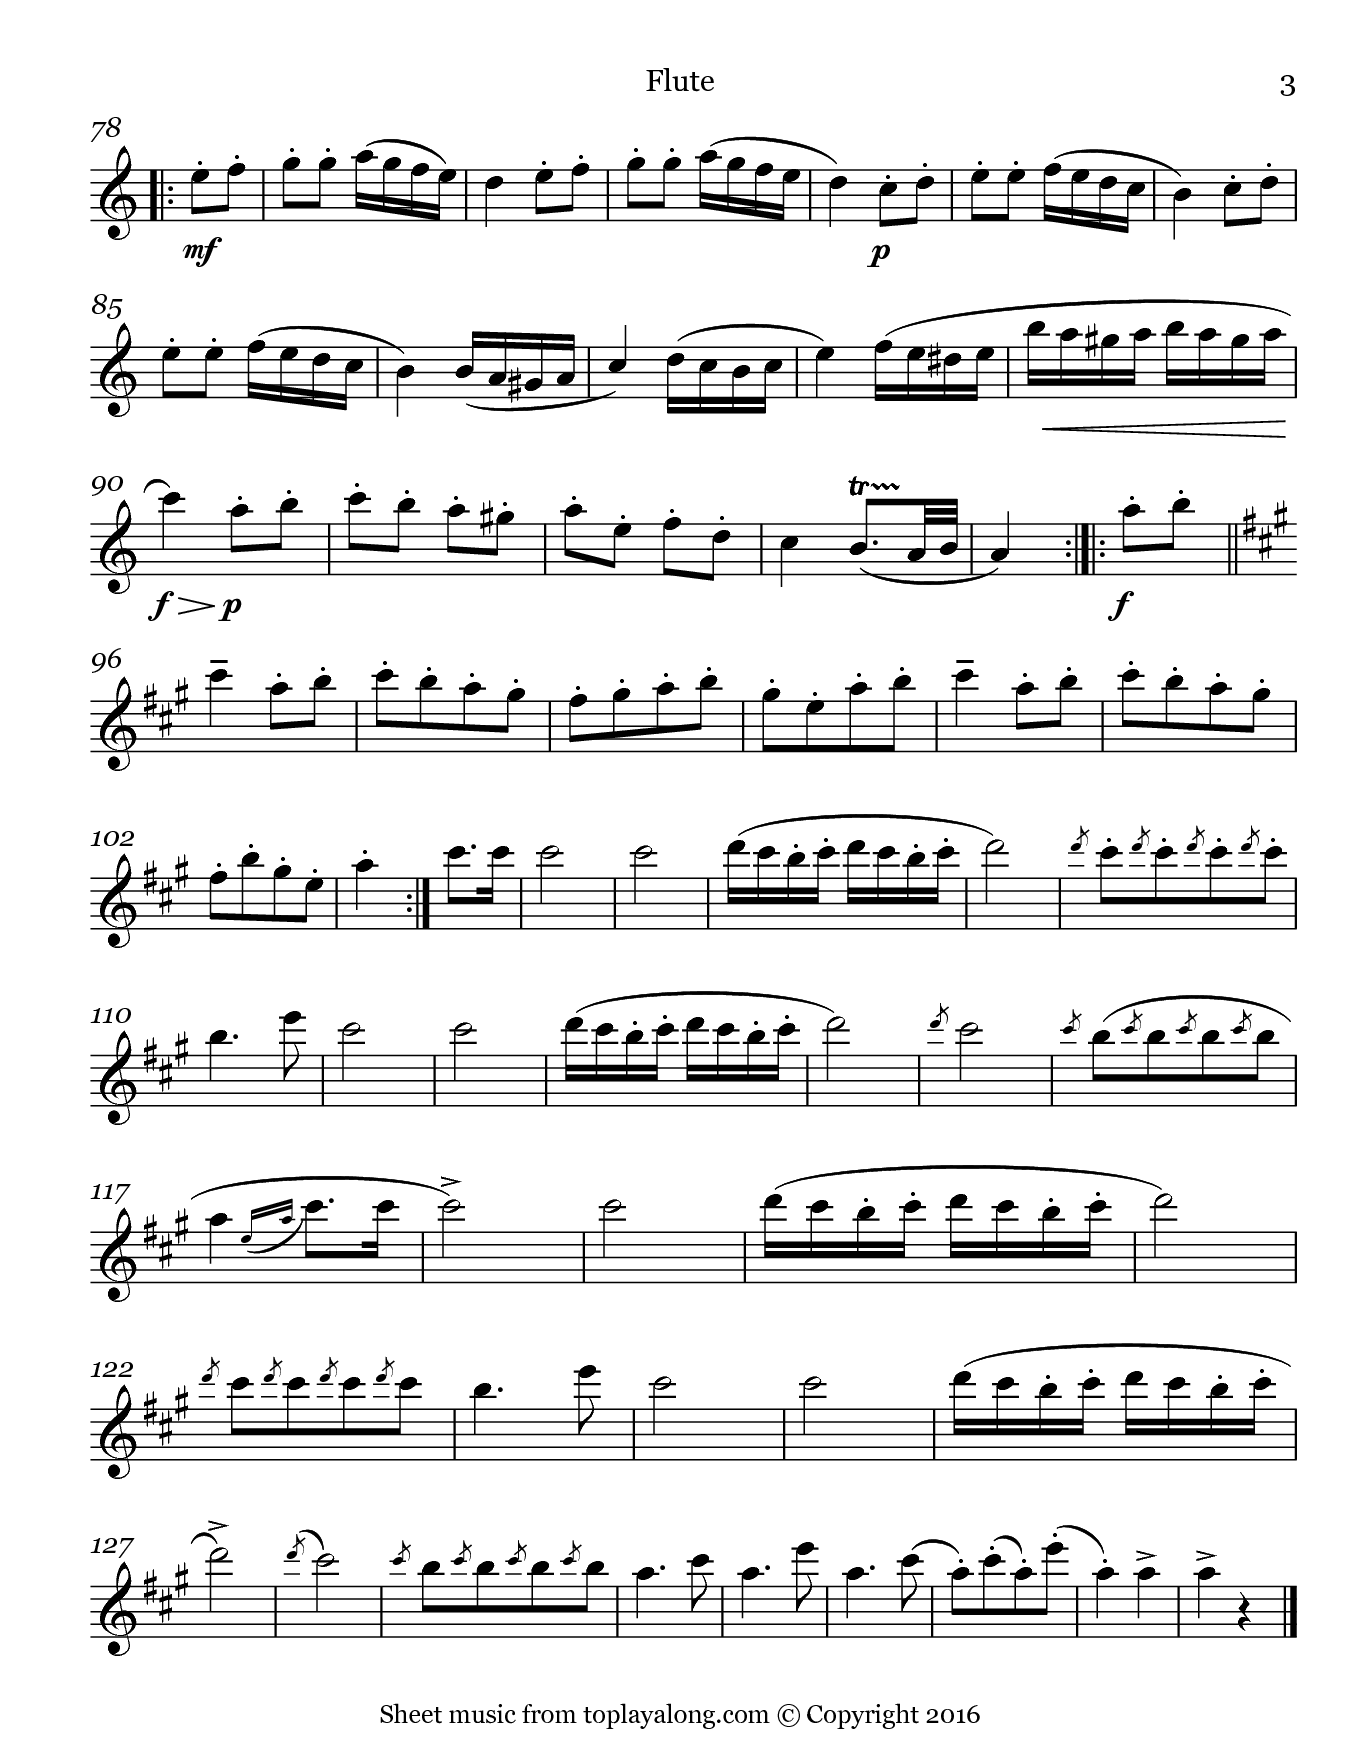 Rondo Alla Turca (Turkish March) by Mozart. Sheet music for Flute, page 3.